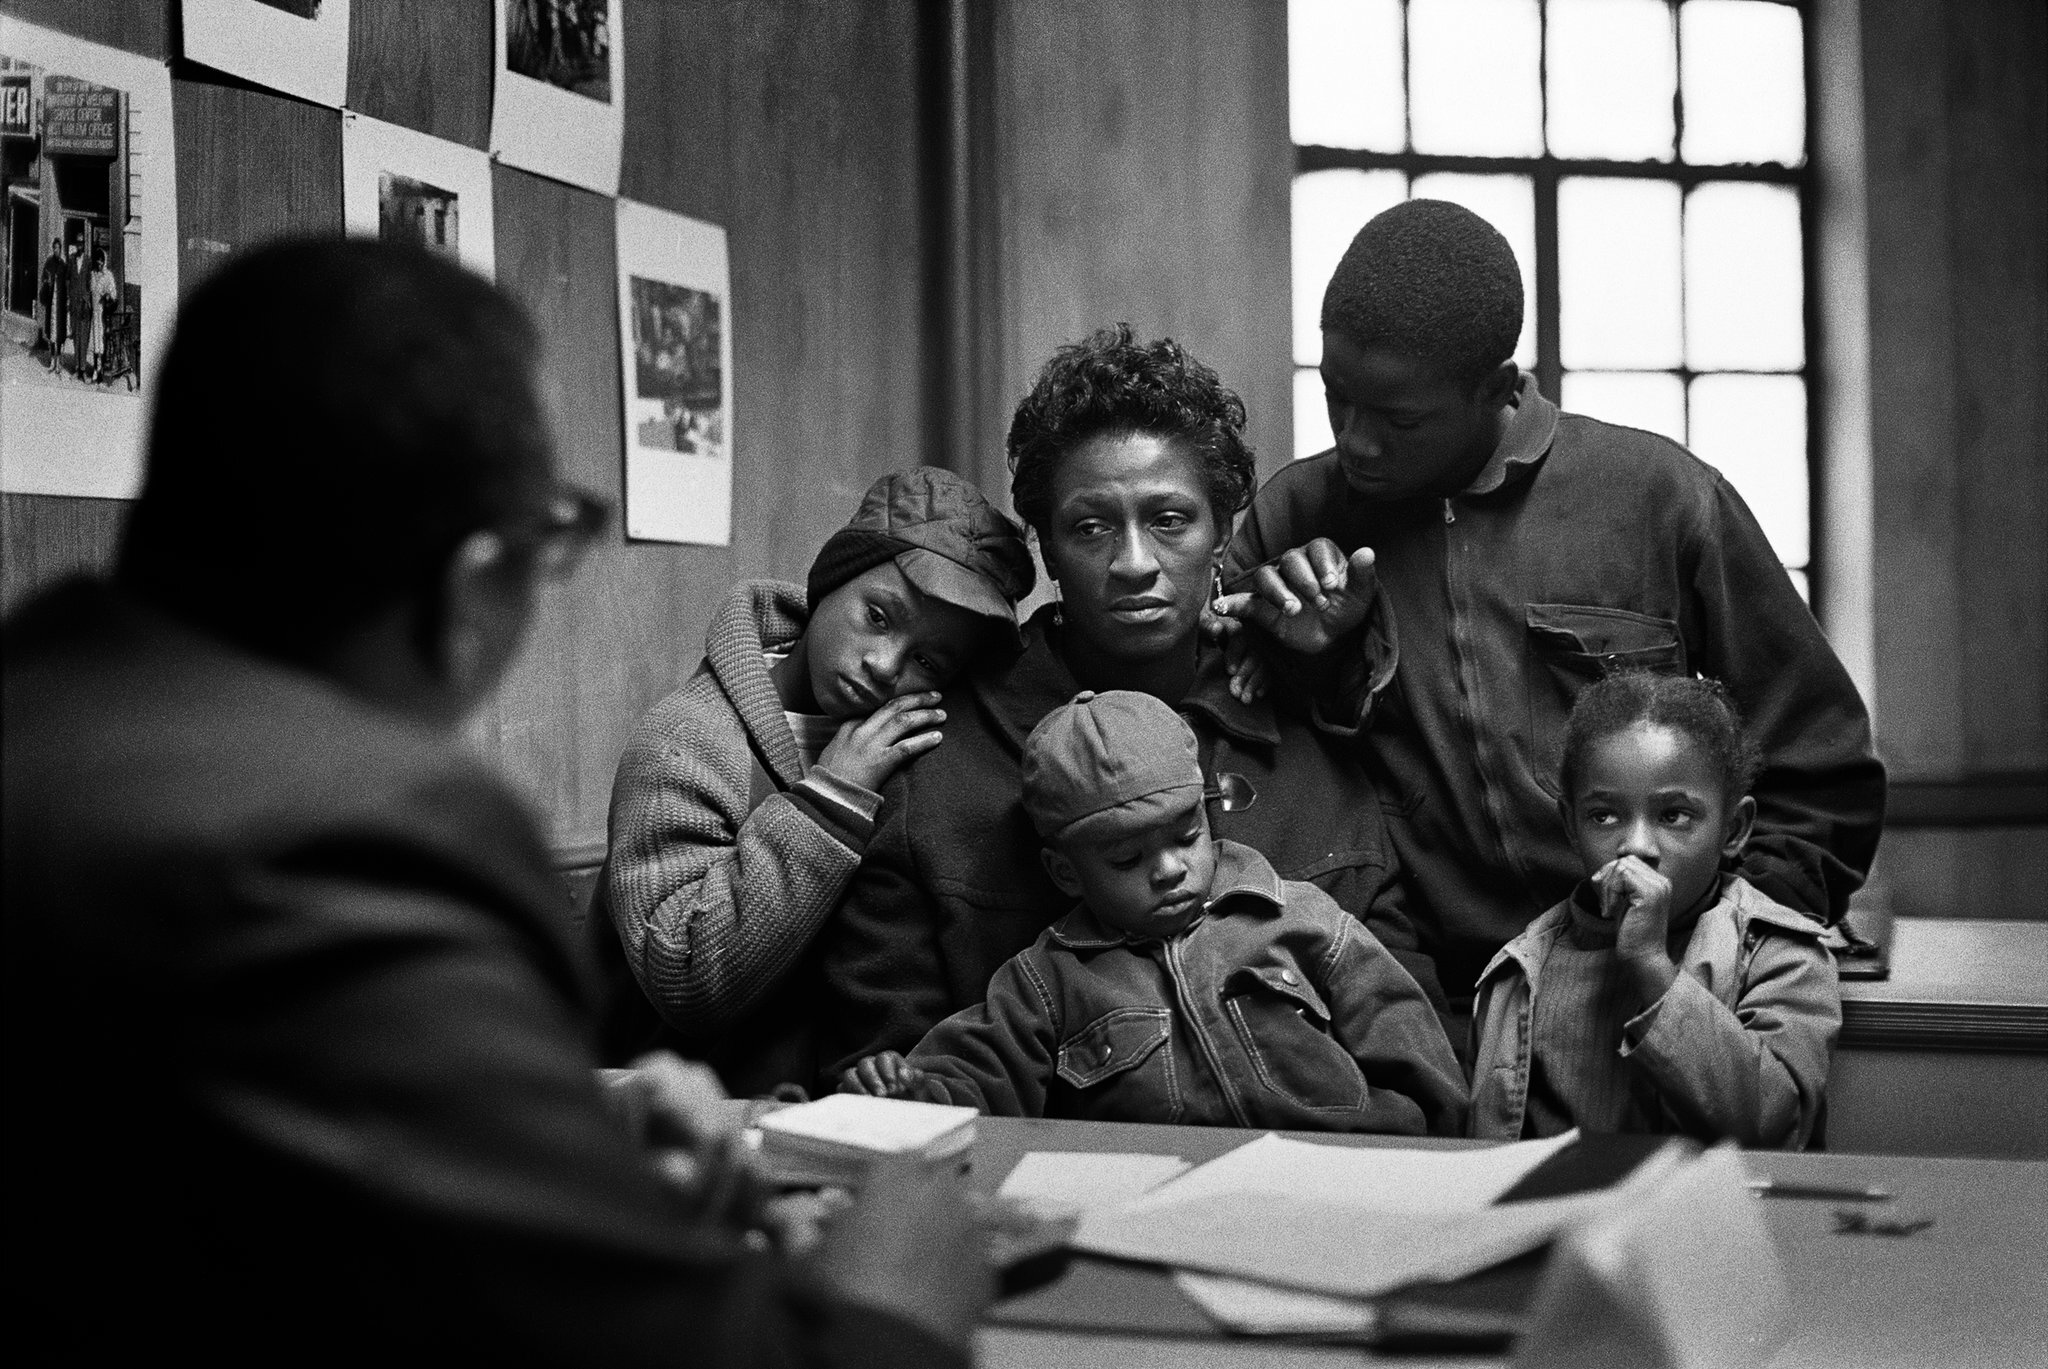 """""""The Fontenelles at the Poverty Board, Harlem, New York, 1967,"""" by Gordon Parks.CreditGordon Parks/The Gordon Parks Foundation and Alison Jacques Gallery"""